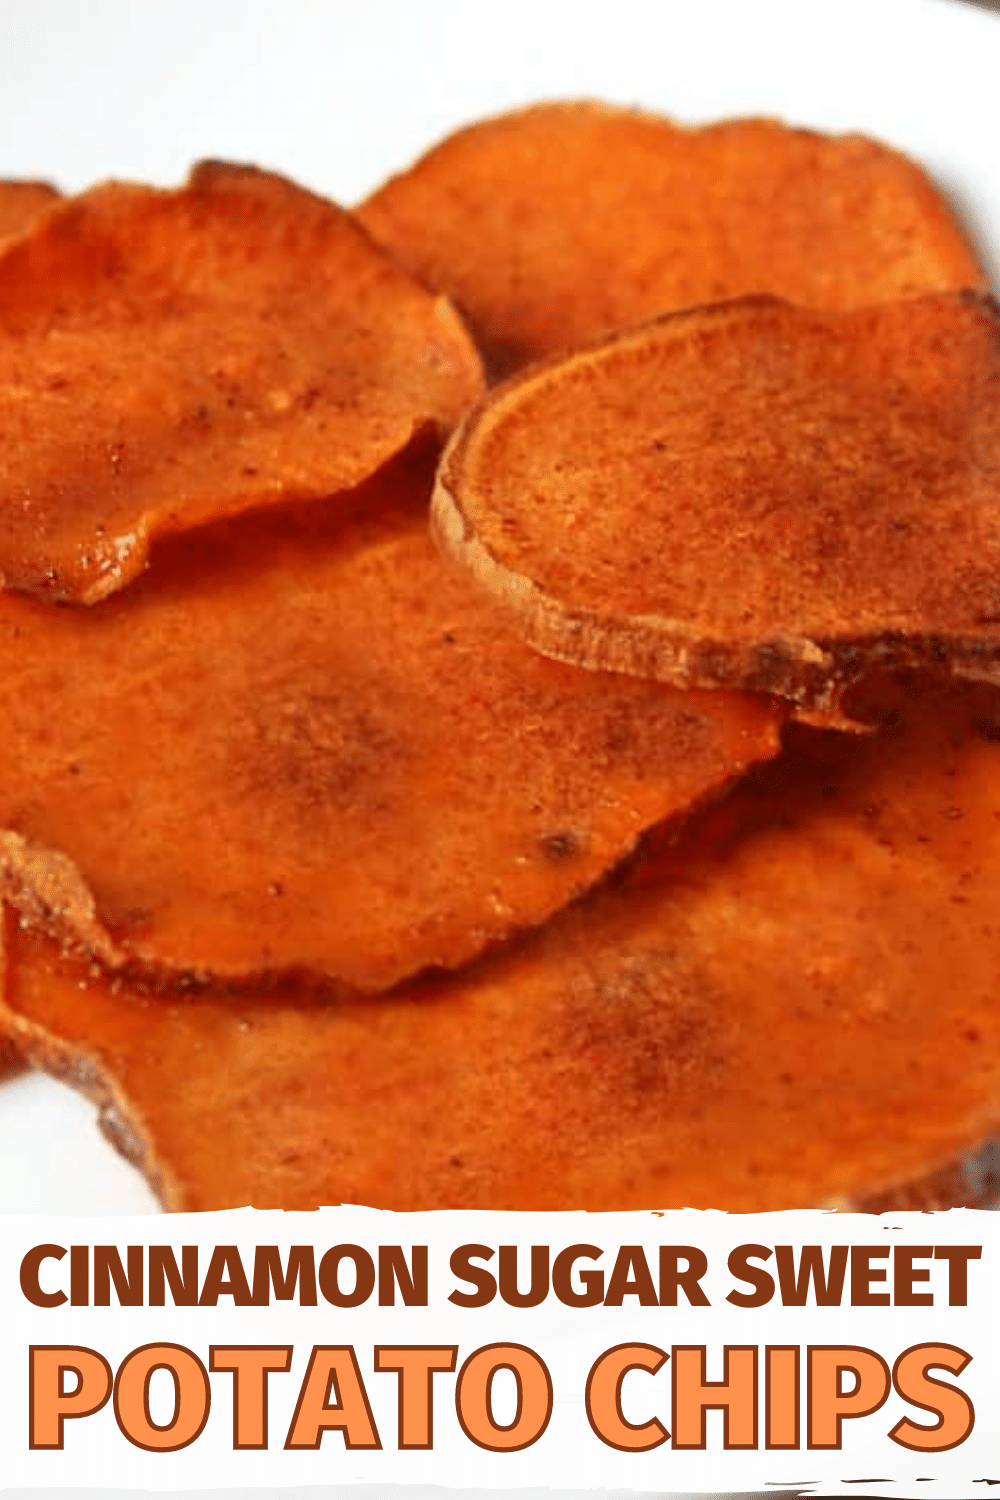 Looking for a guilt-free, delicious snack? These Cinnamon Sugar Sweet Potato Chips are perfect! #healthy #healthyeating #sweetpotatochips via @wondermomwannab